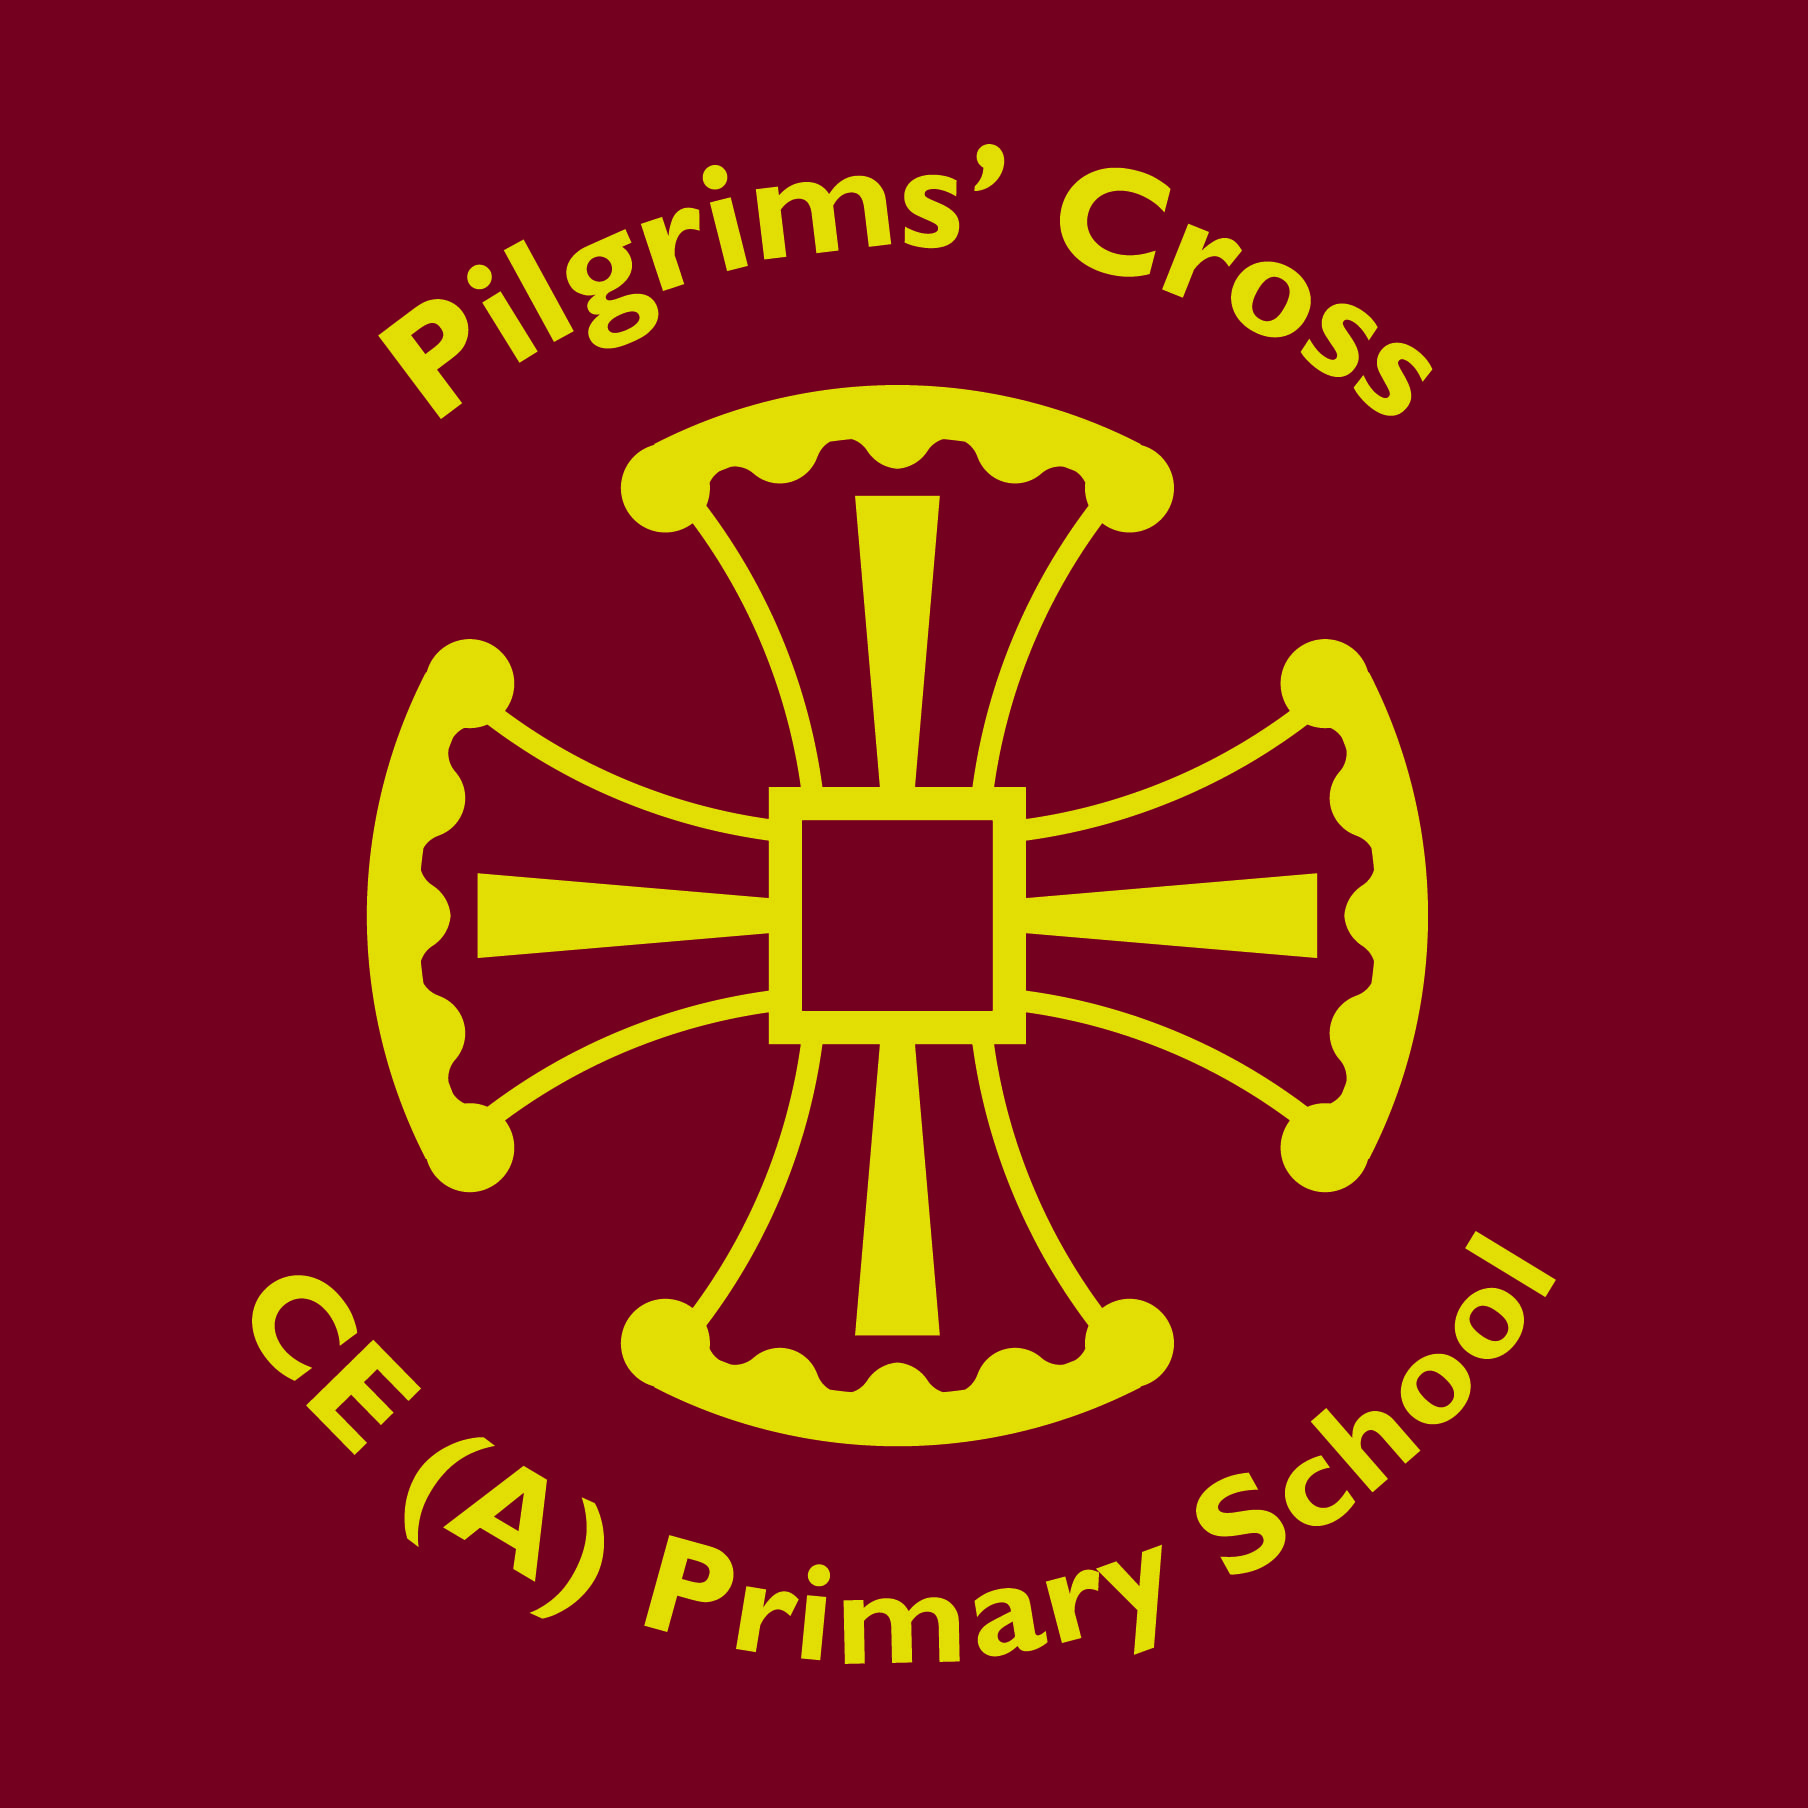 Pilgrims Cross